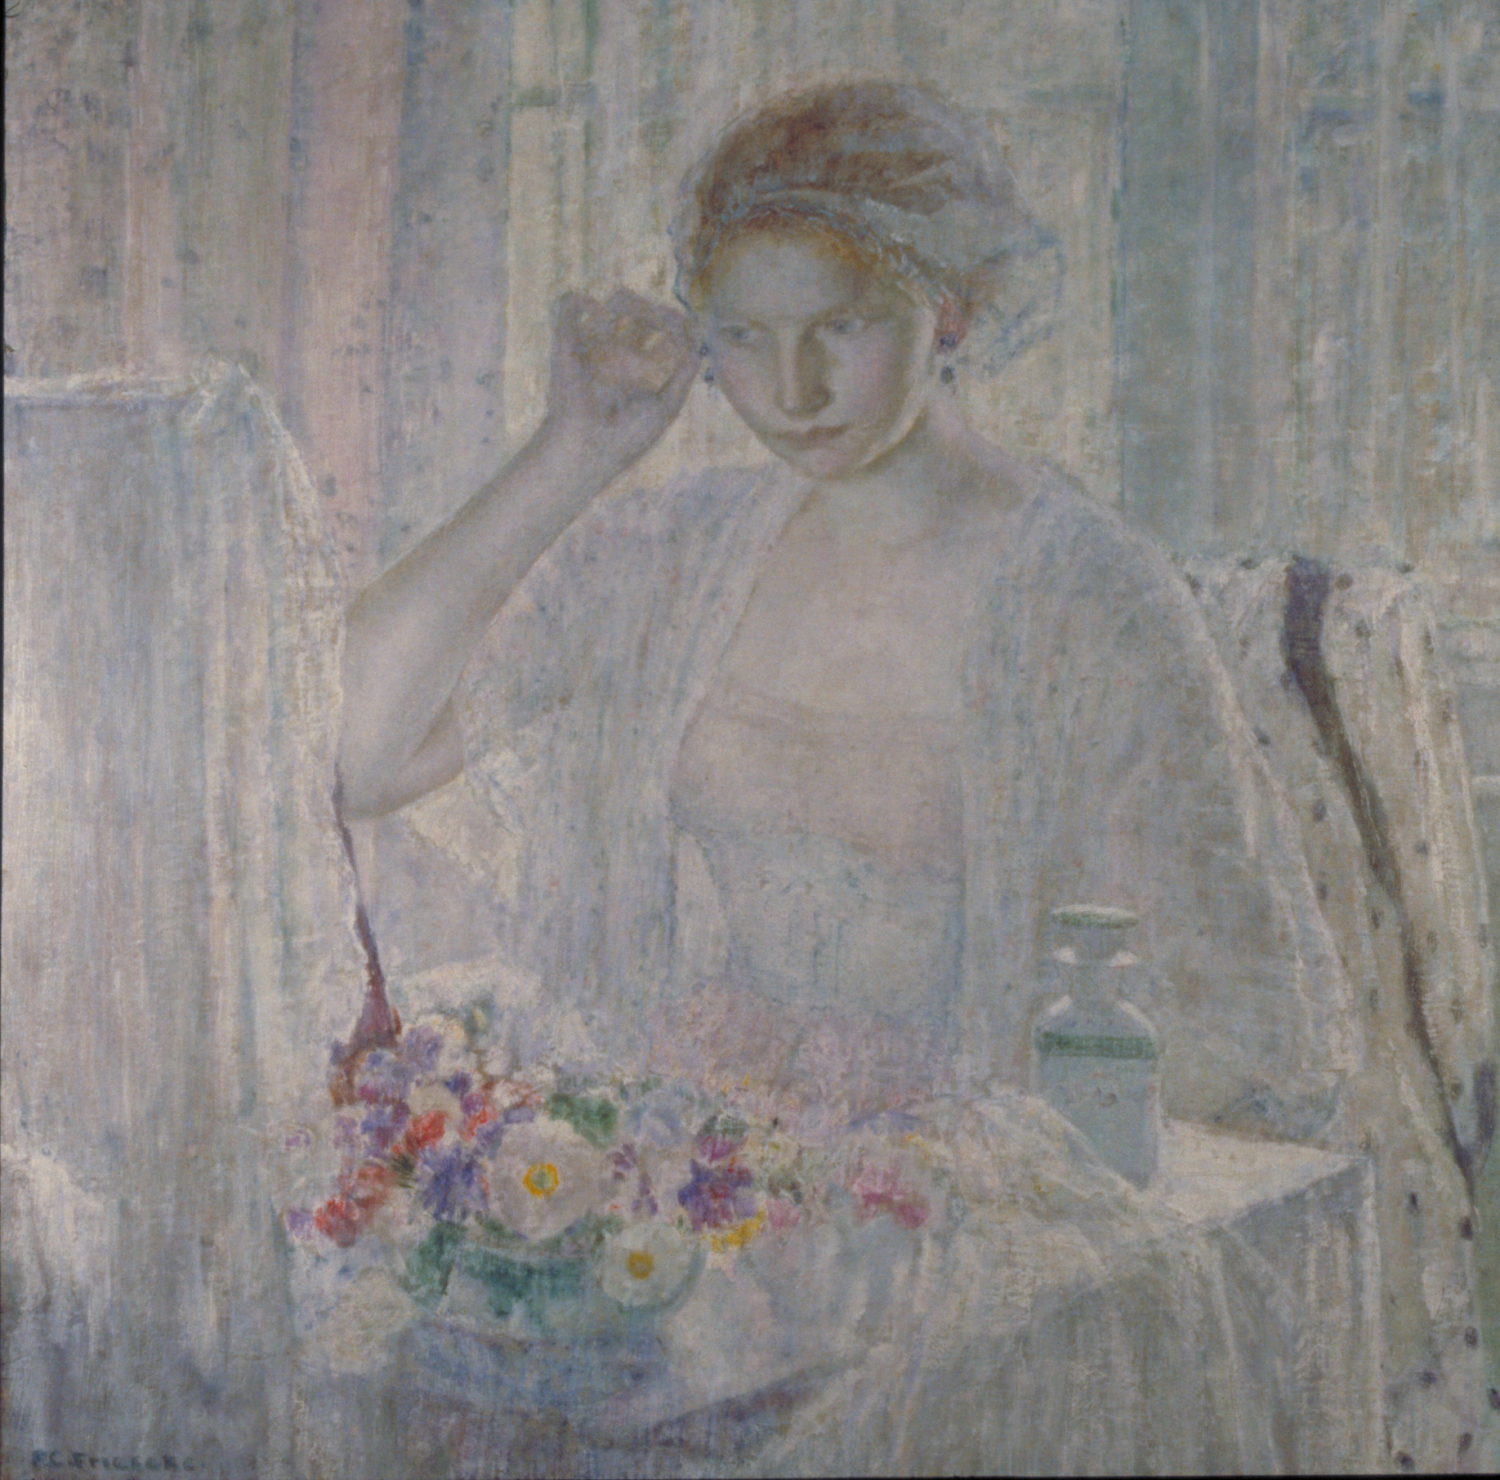 Painting of a girl in a gauzy dressing gown putting on earrings. She sits at a table with flowers as light filters through the light curtains behind her. The painting is all in pastels, conveying the lightness of the room.